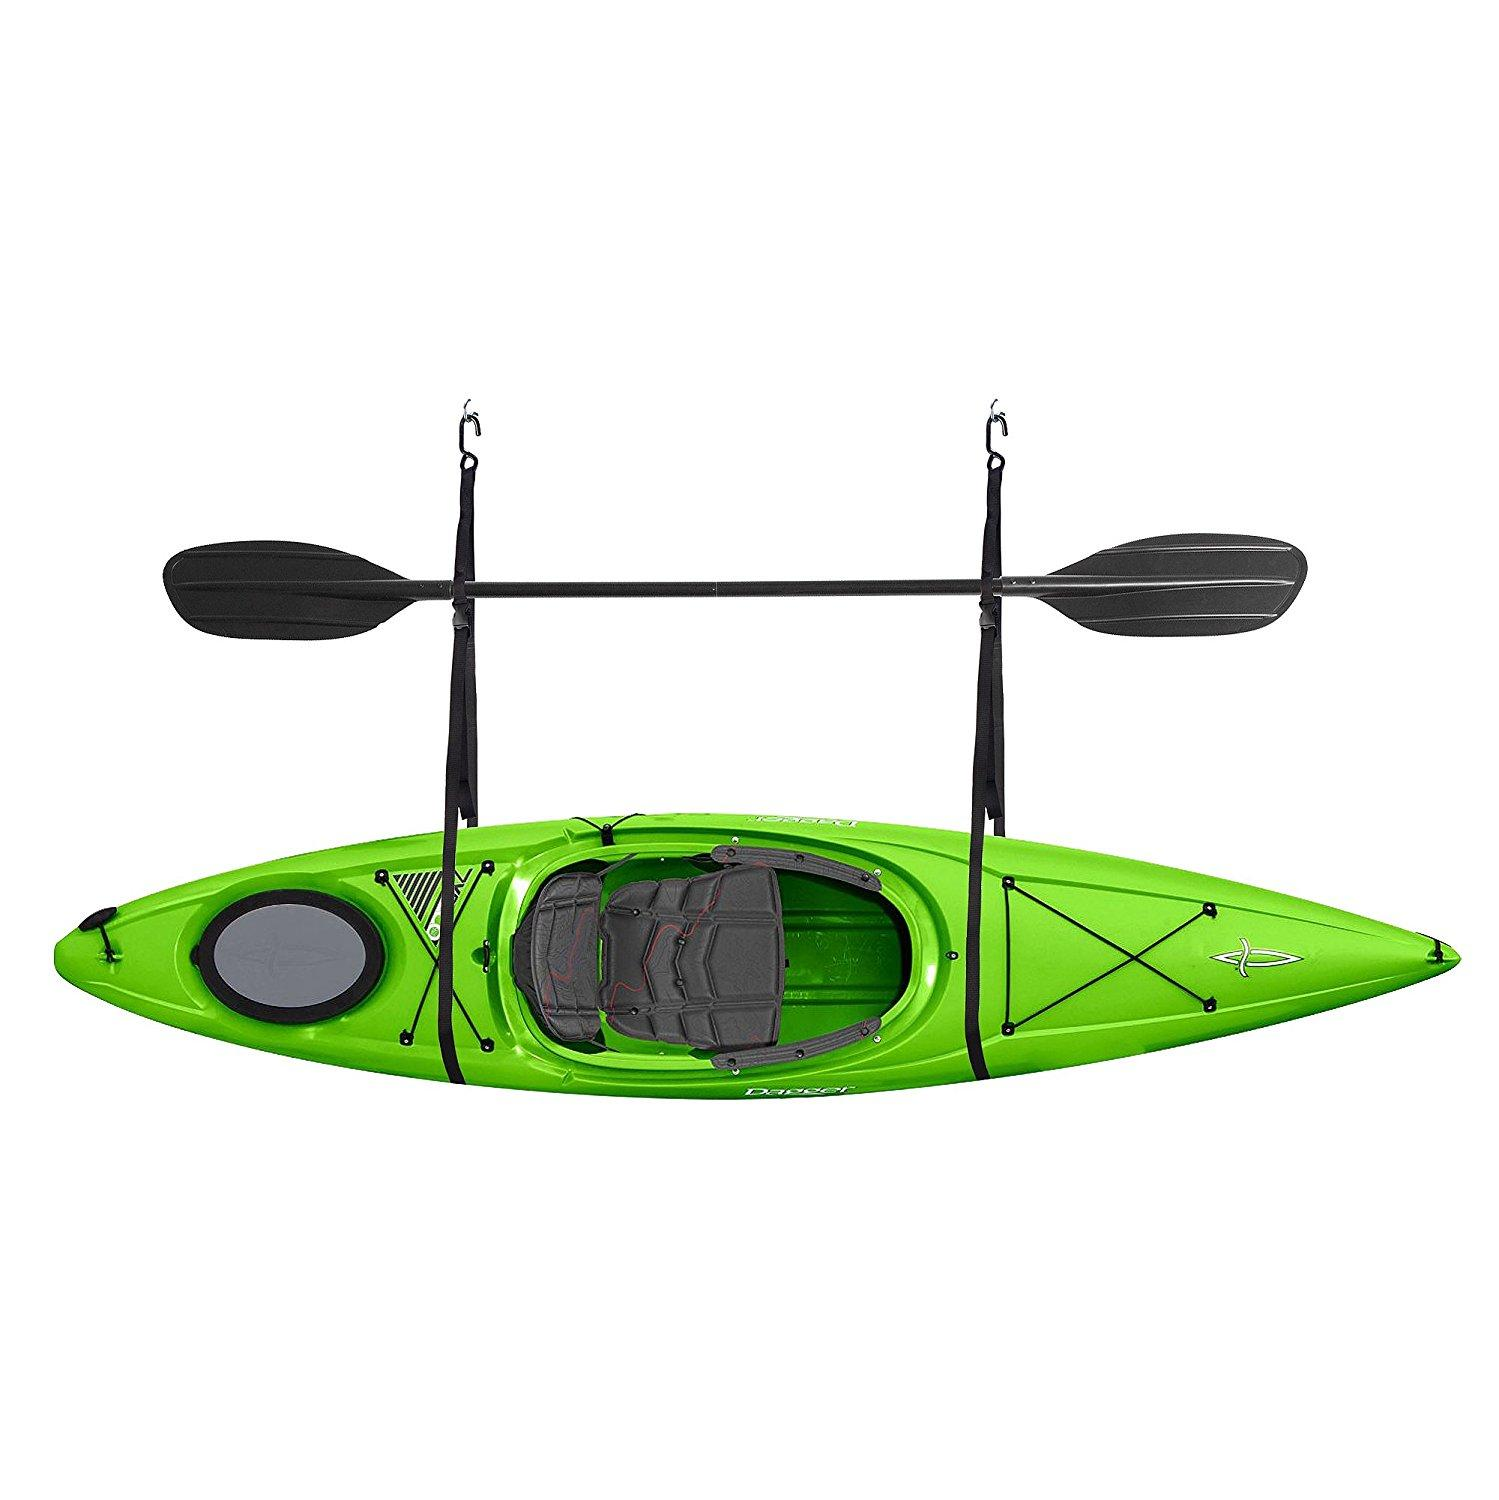 amazon com rad sportz garage canoe 100 lb capacity double kayak